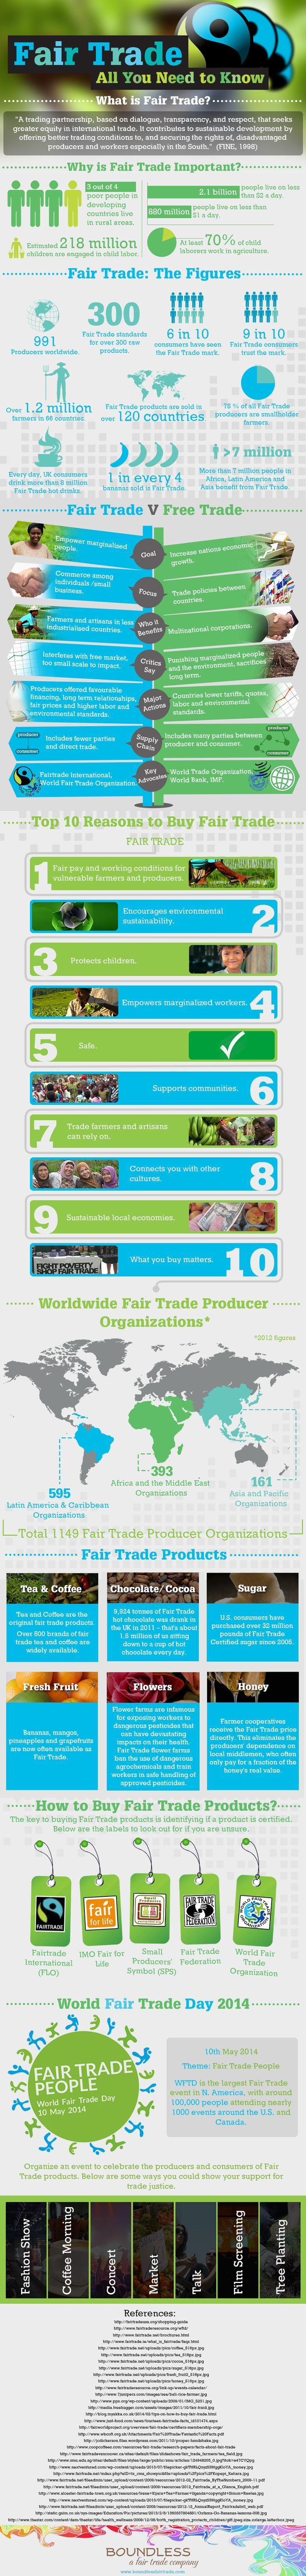 Boundless Fair Trade Infographic (for my fellow nerds)